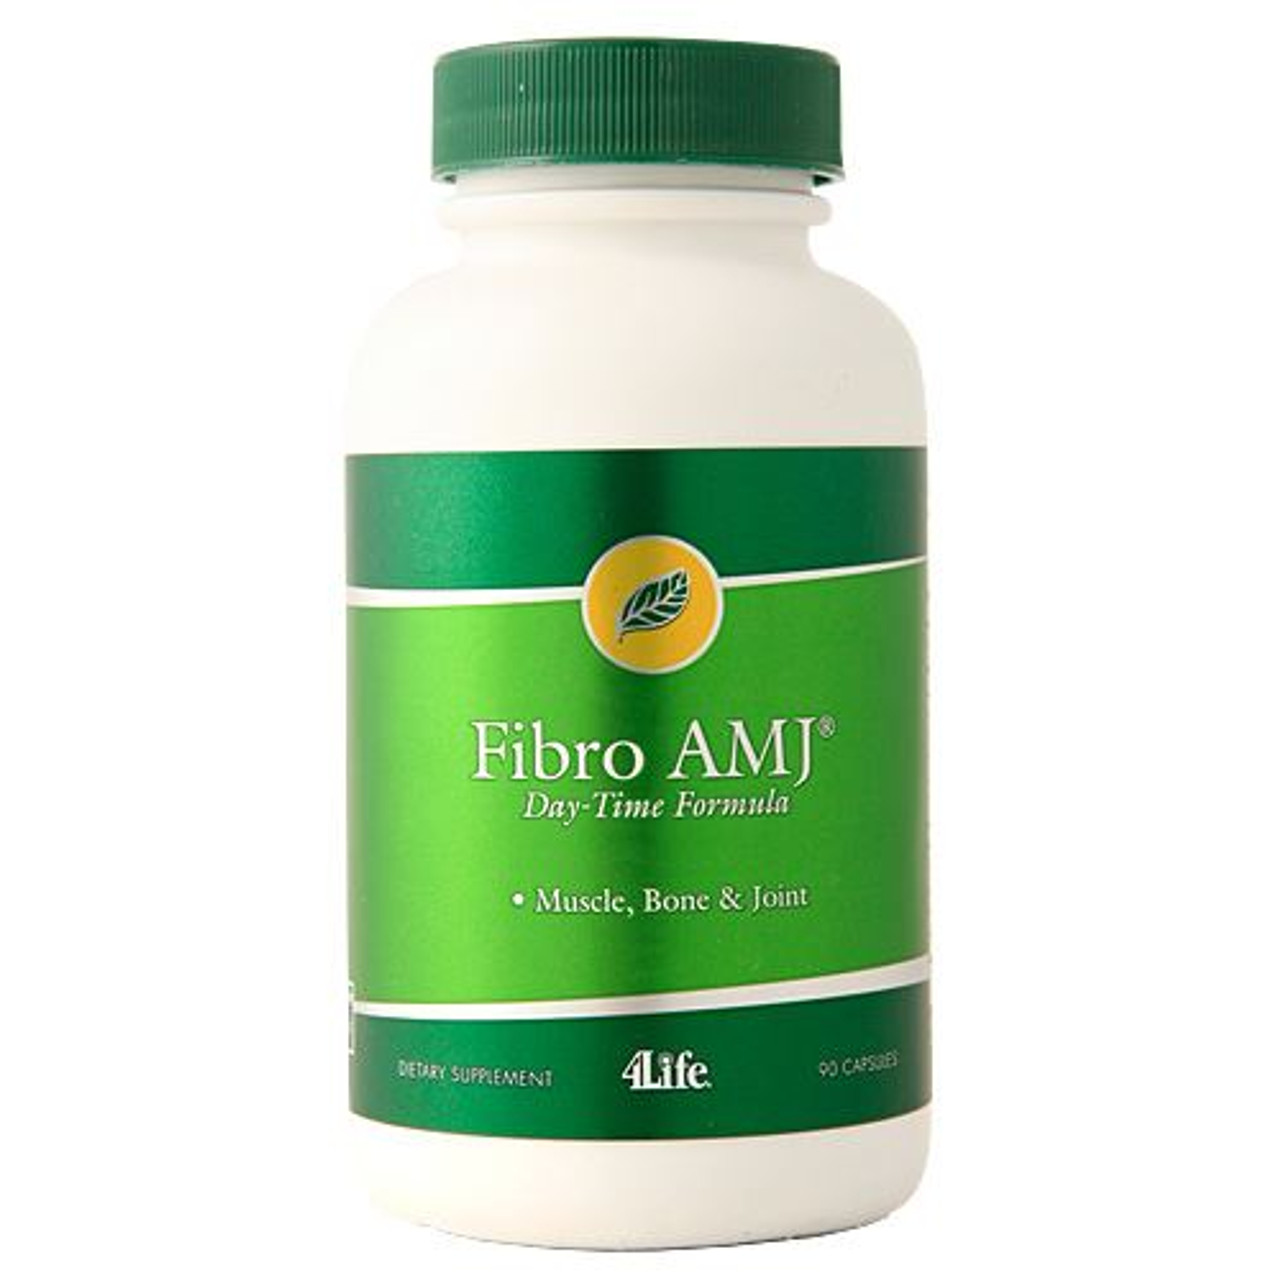 FibroAMJ Day time formula